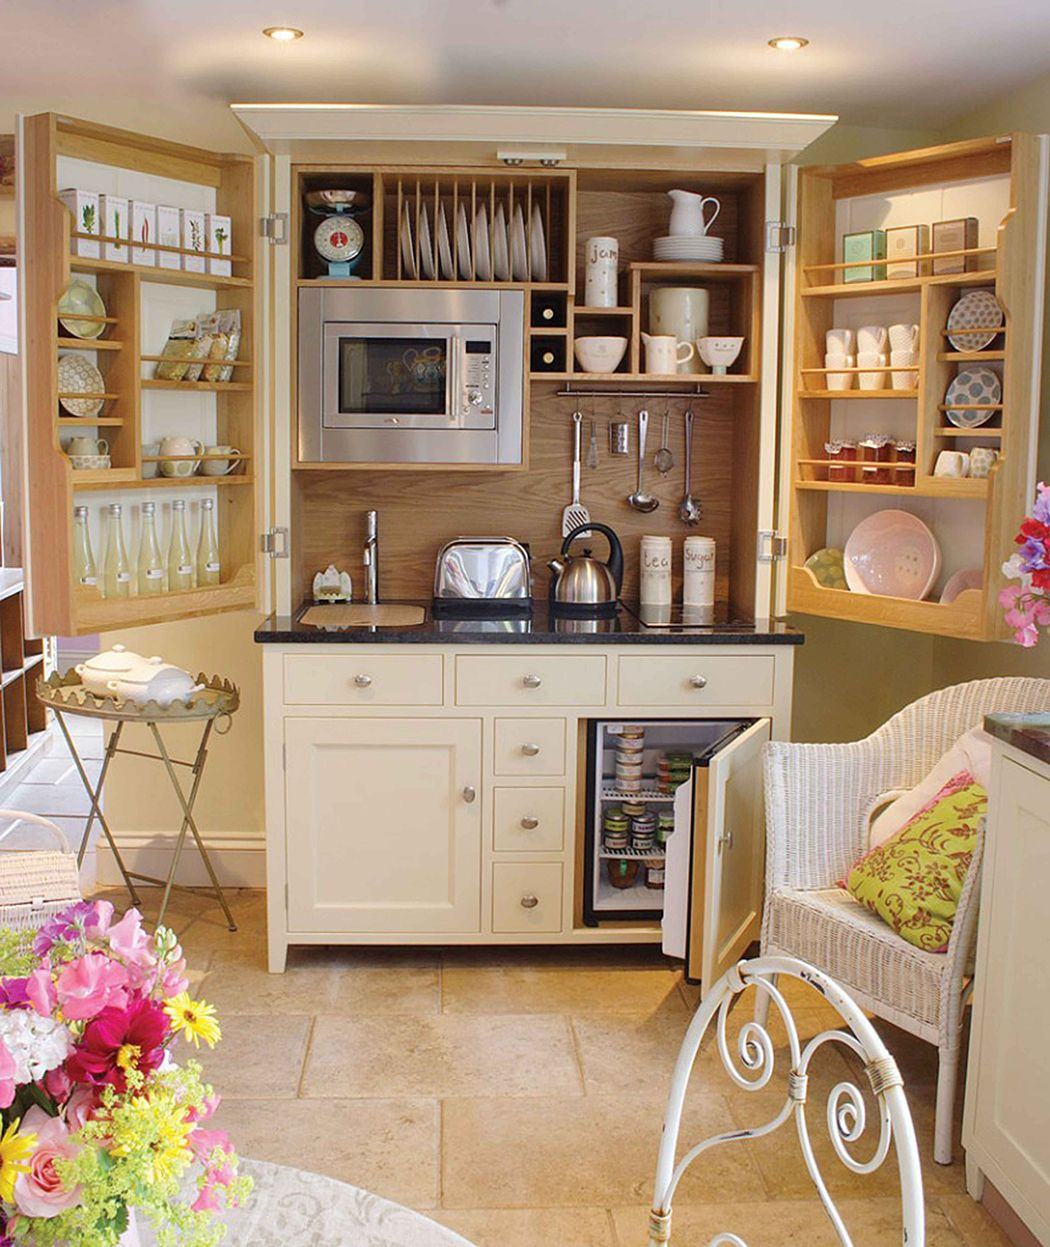 50 best small kitchen ideas and designs for 2016 - Kitchen Pantry Ideas Small Kitchens